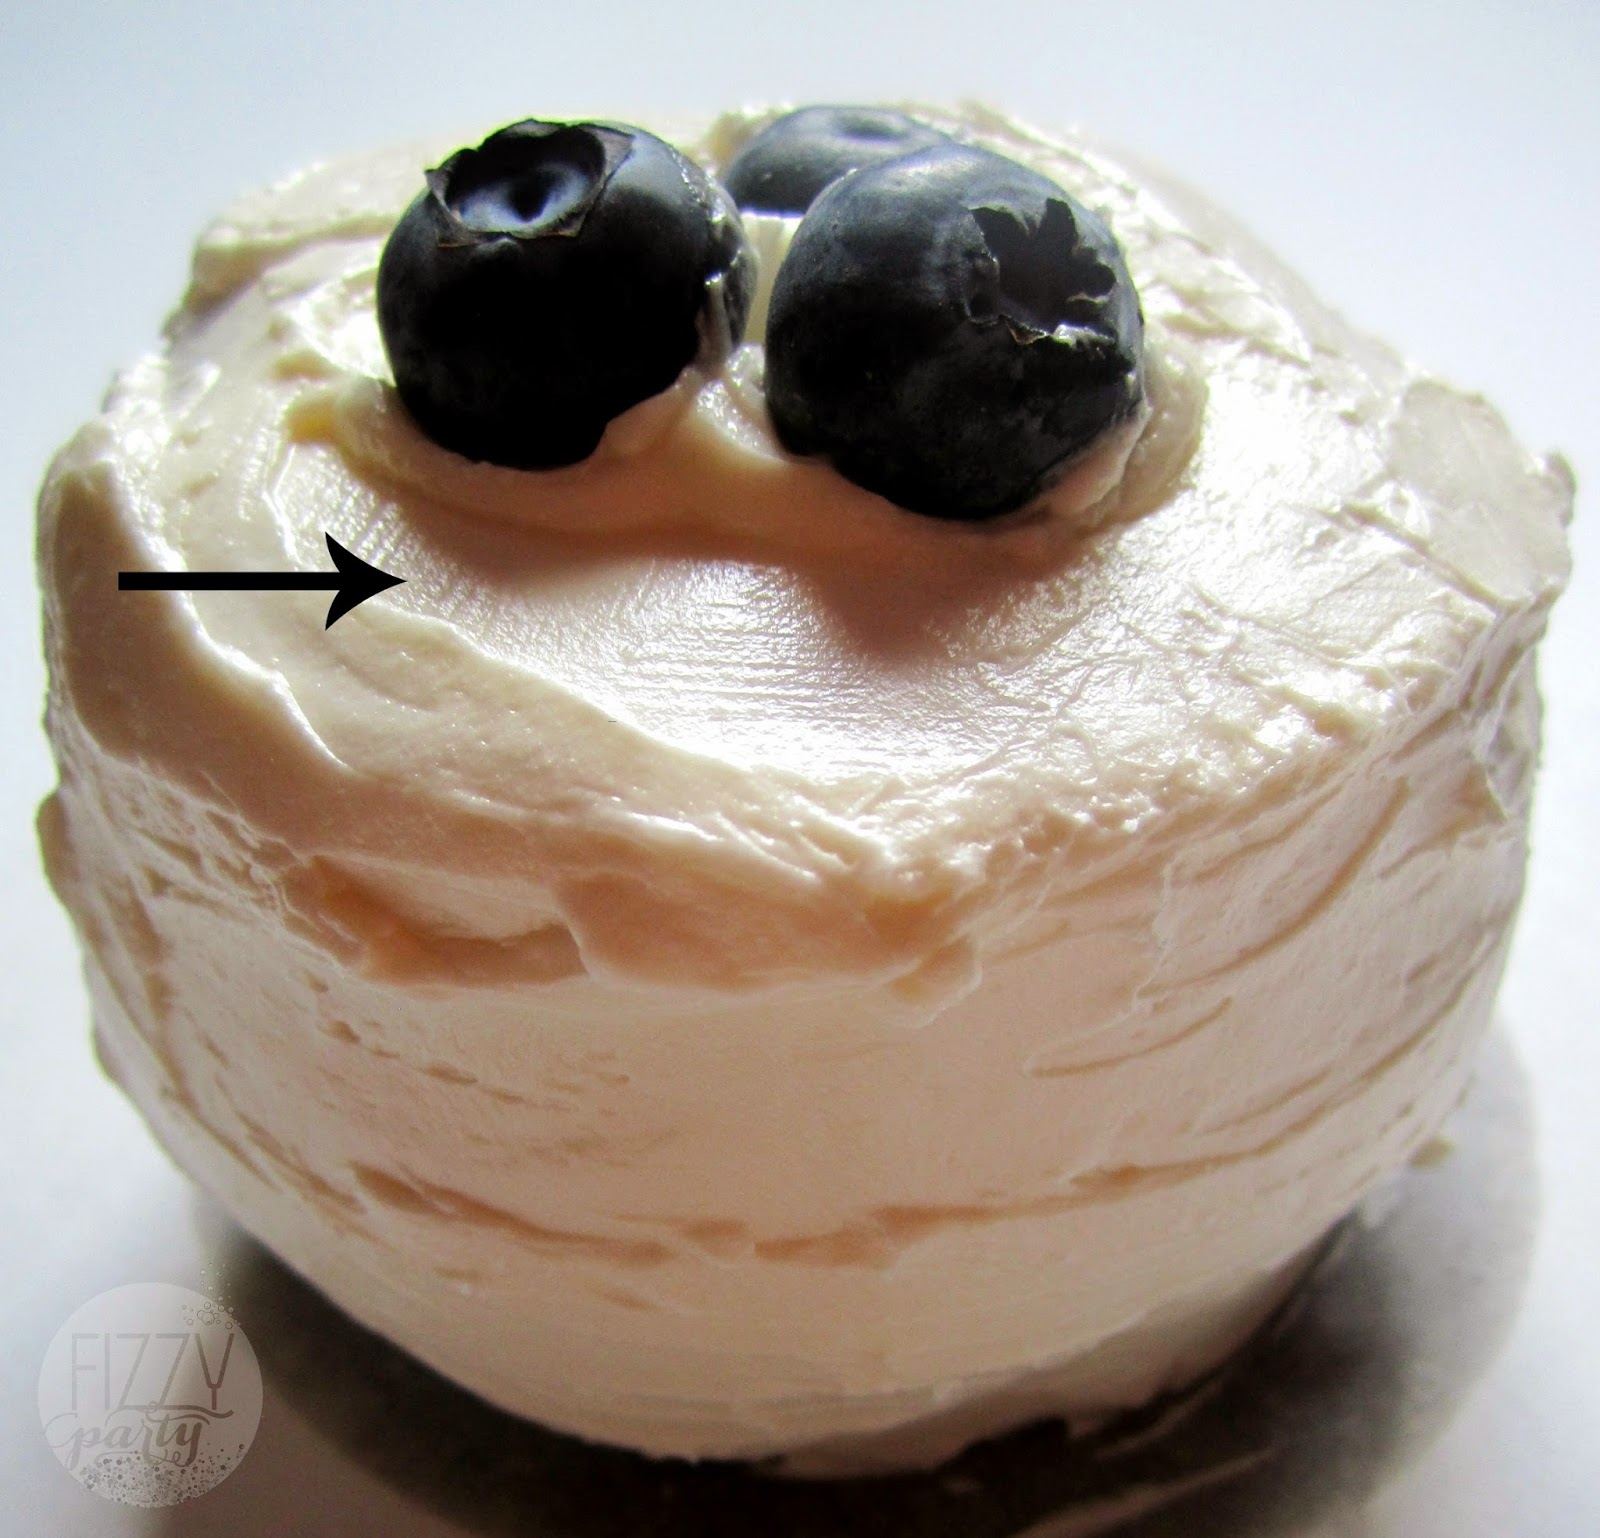 Dream Cakes mini cake with blueberries